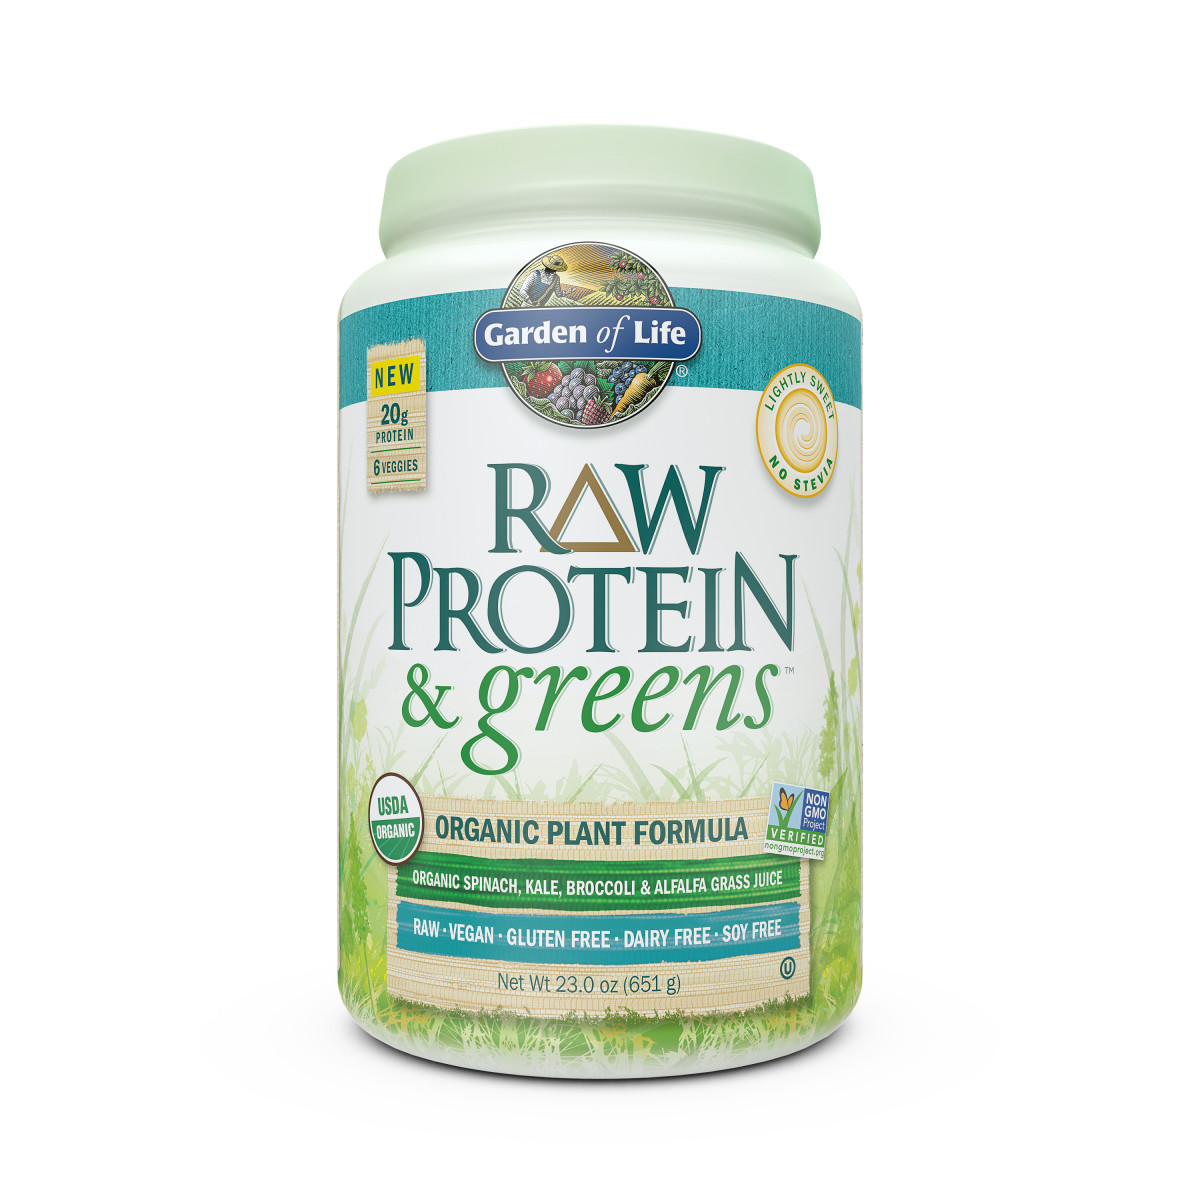 Garden of Life - RawProtein & Greens - LightlySweet